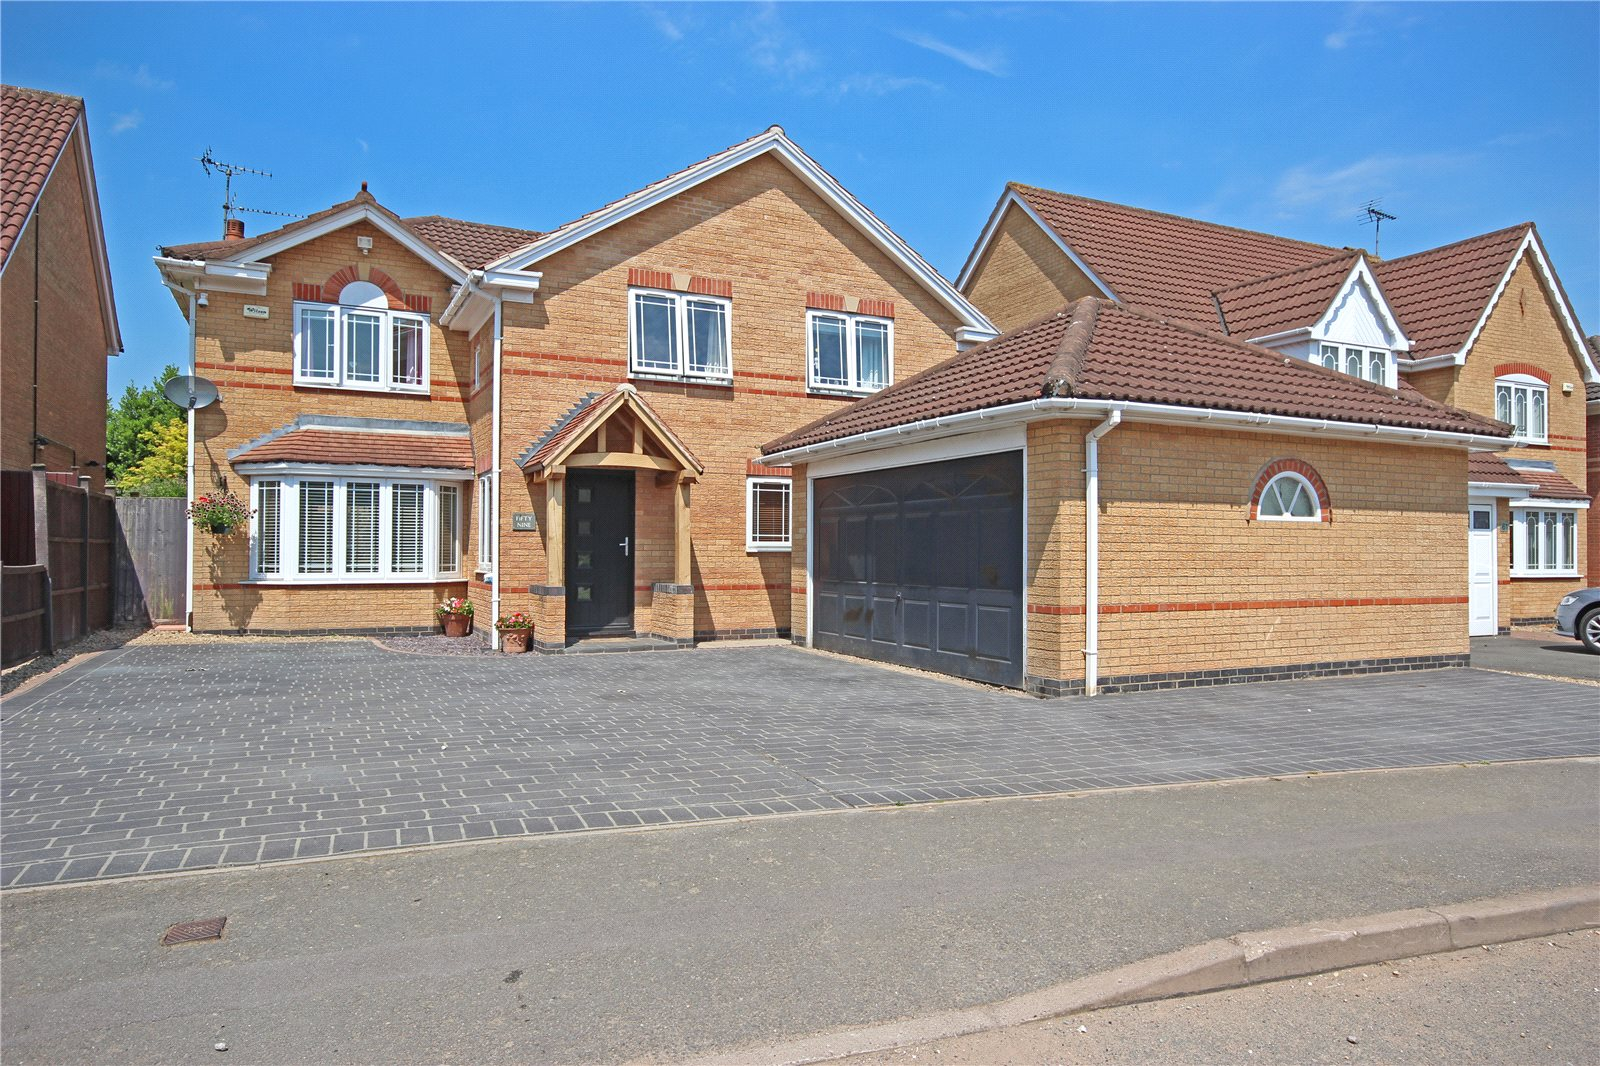 Whitegates Leicester 6 Bedroom House For Sale In Forest House Lane